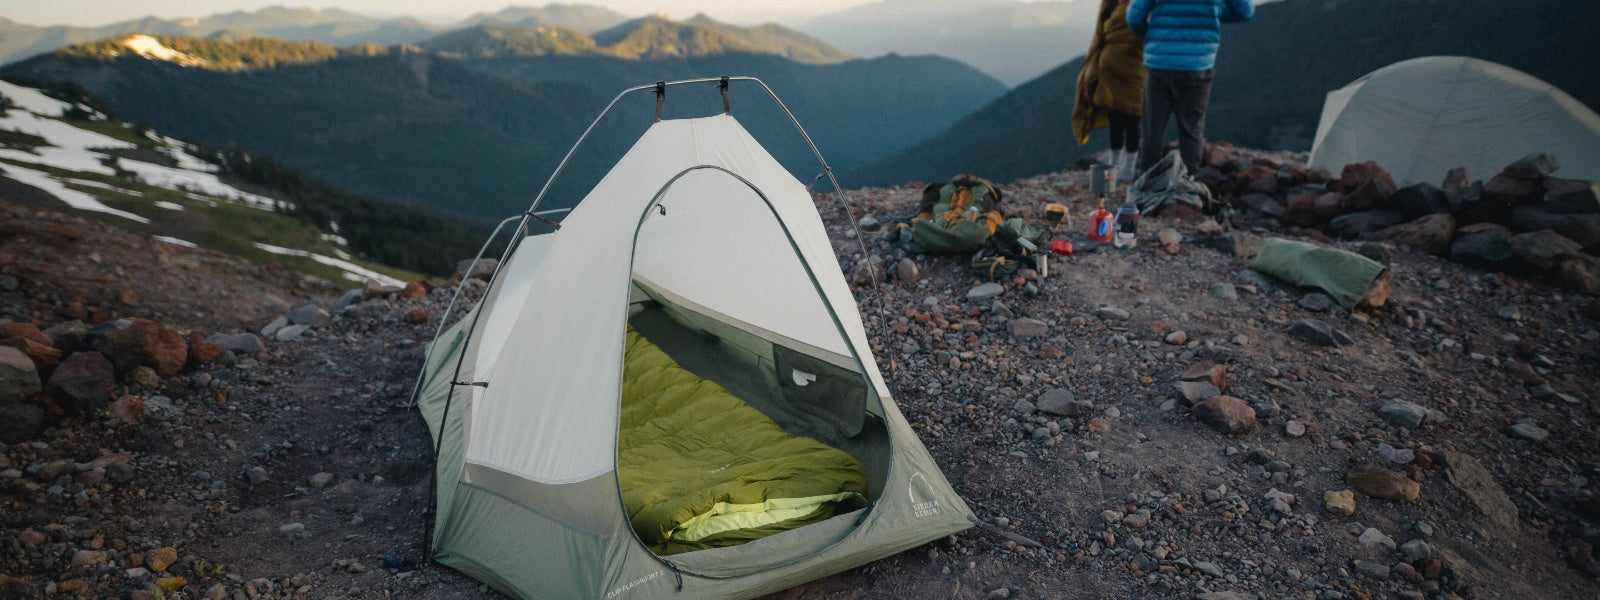 Our aim with the Light Bed was to give the backpacking community a lighter weight, more compact option without sacrificing the functionality, ease, and warmth of our original Zenbivy Bed.